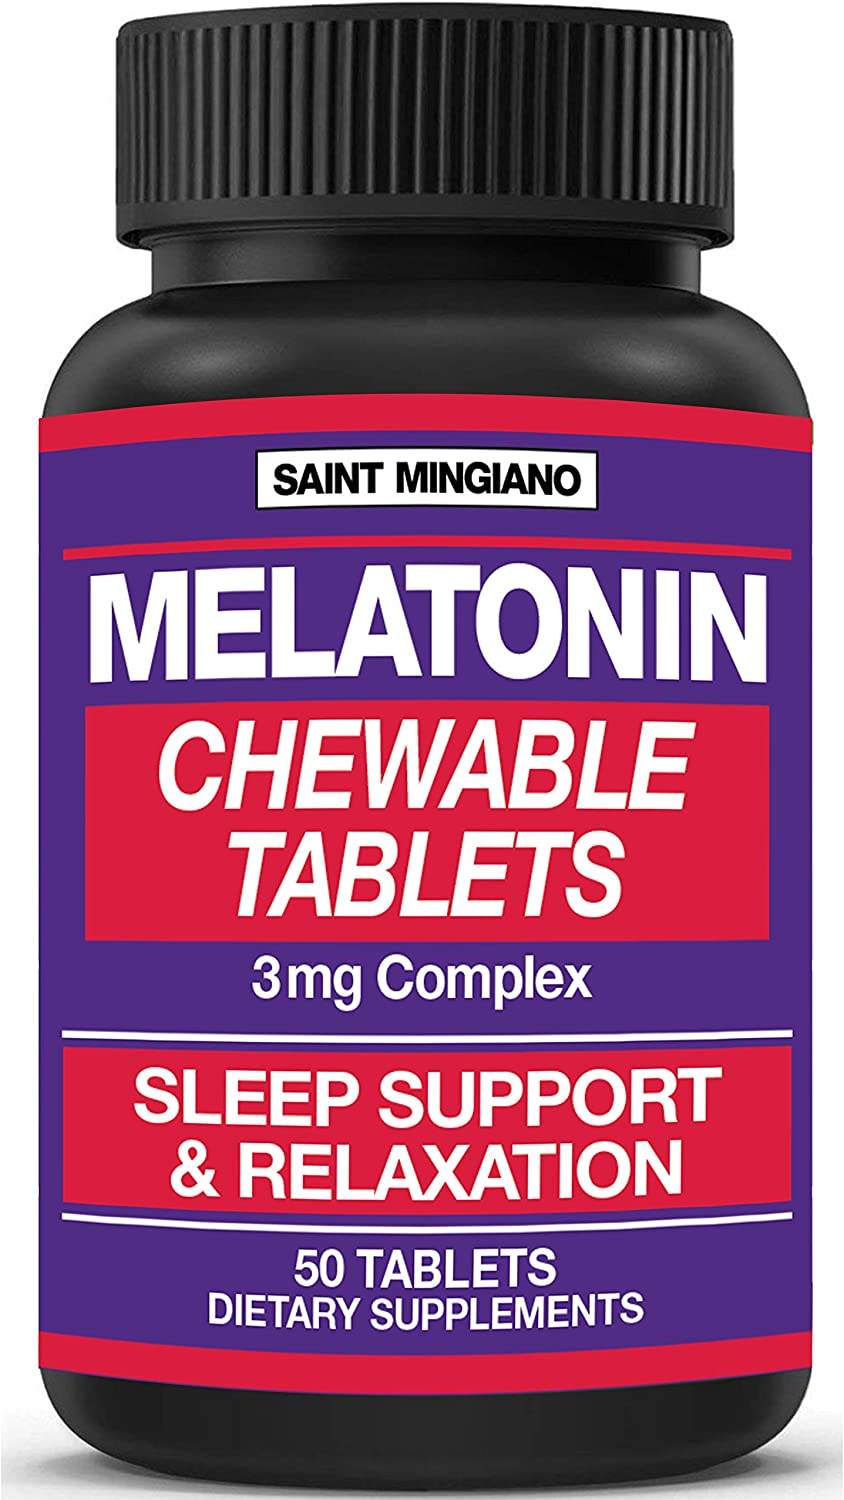 Melatonin Max 61% OFF - 50 Chewable Tablets 3mg NEW before selling Fast Asleep Fall You Helps